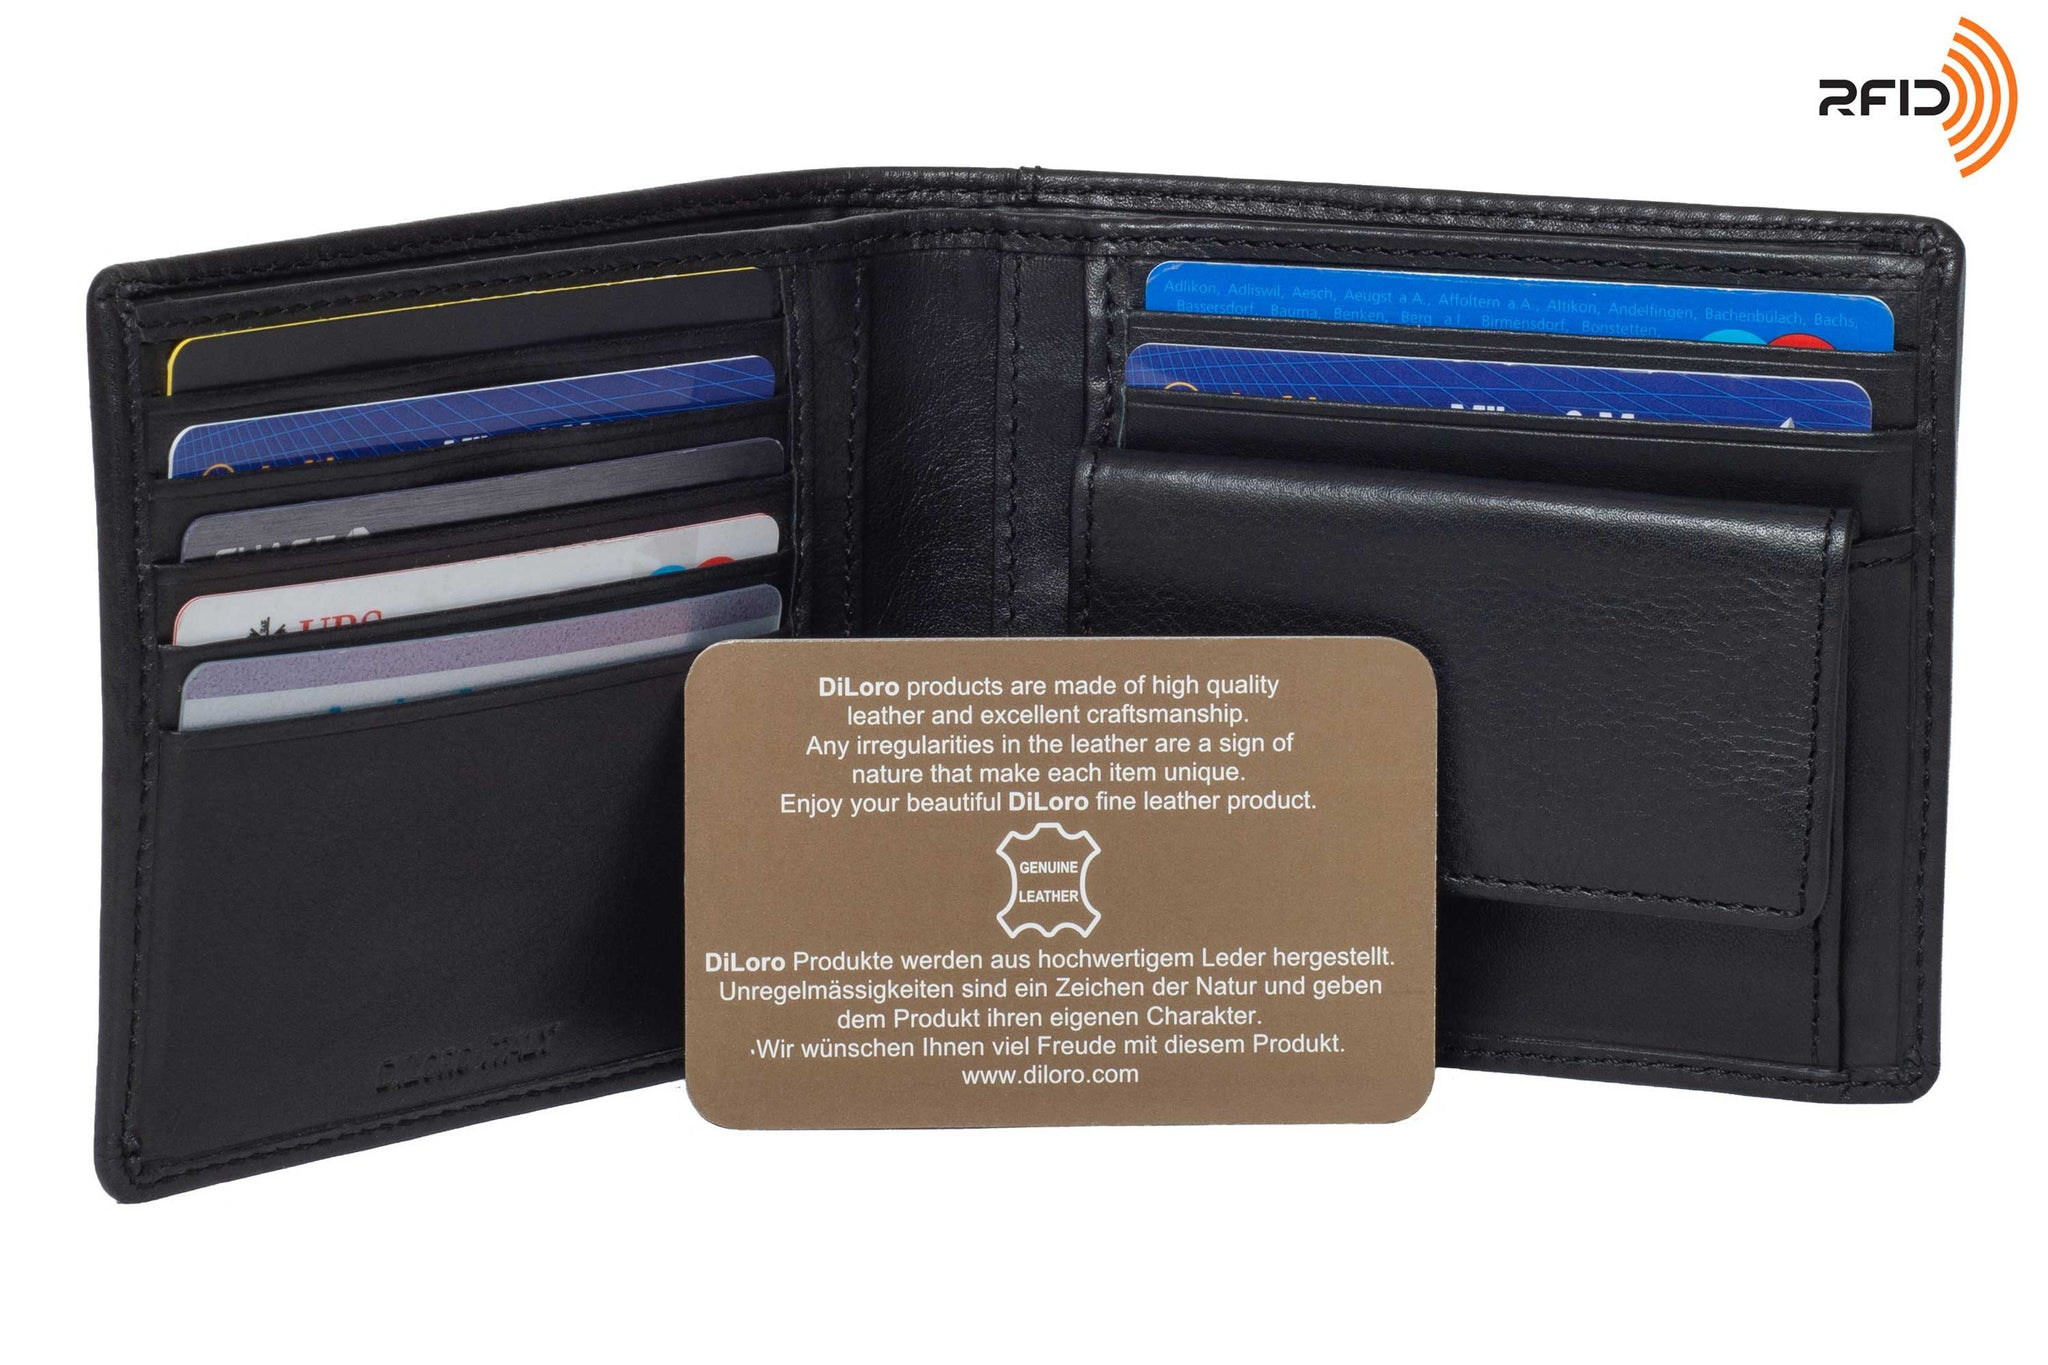 DiLoro Leather Bifold Wallet with Back Slip Pocket, Coin Section and RFID Protection - Warranty Card